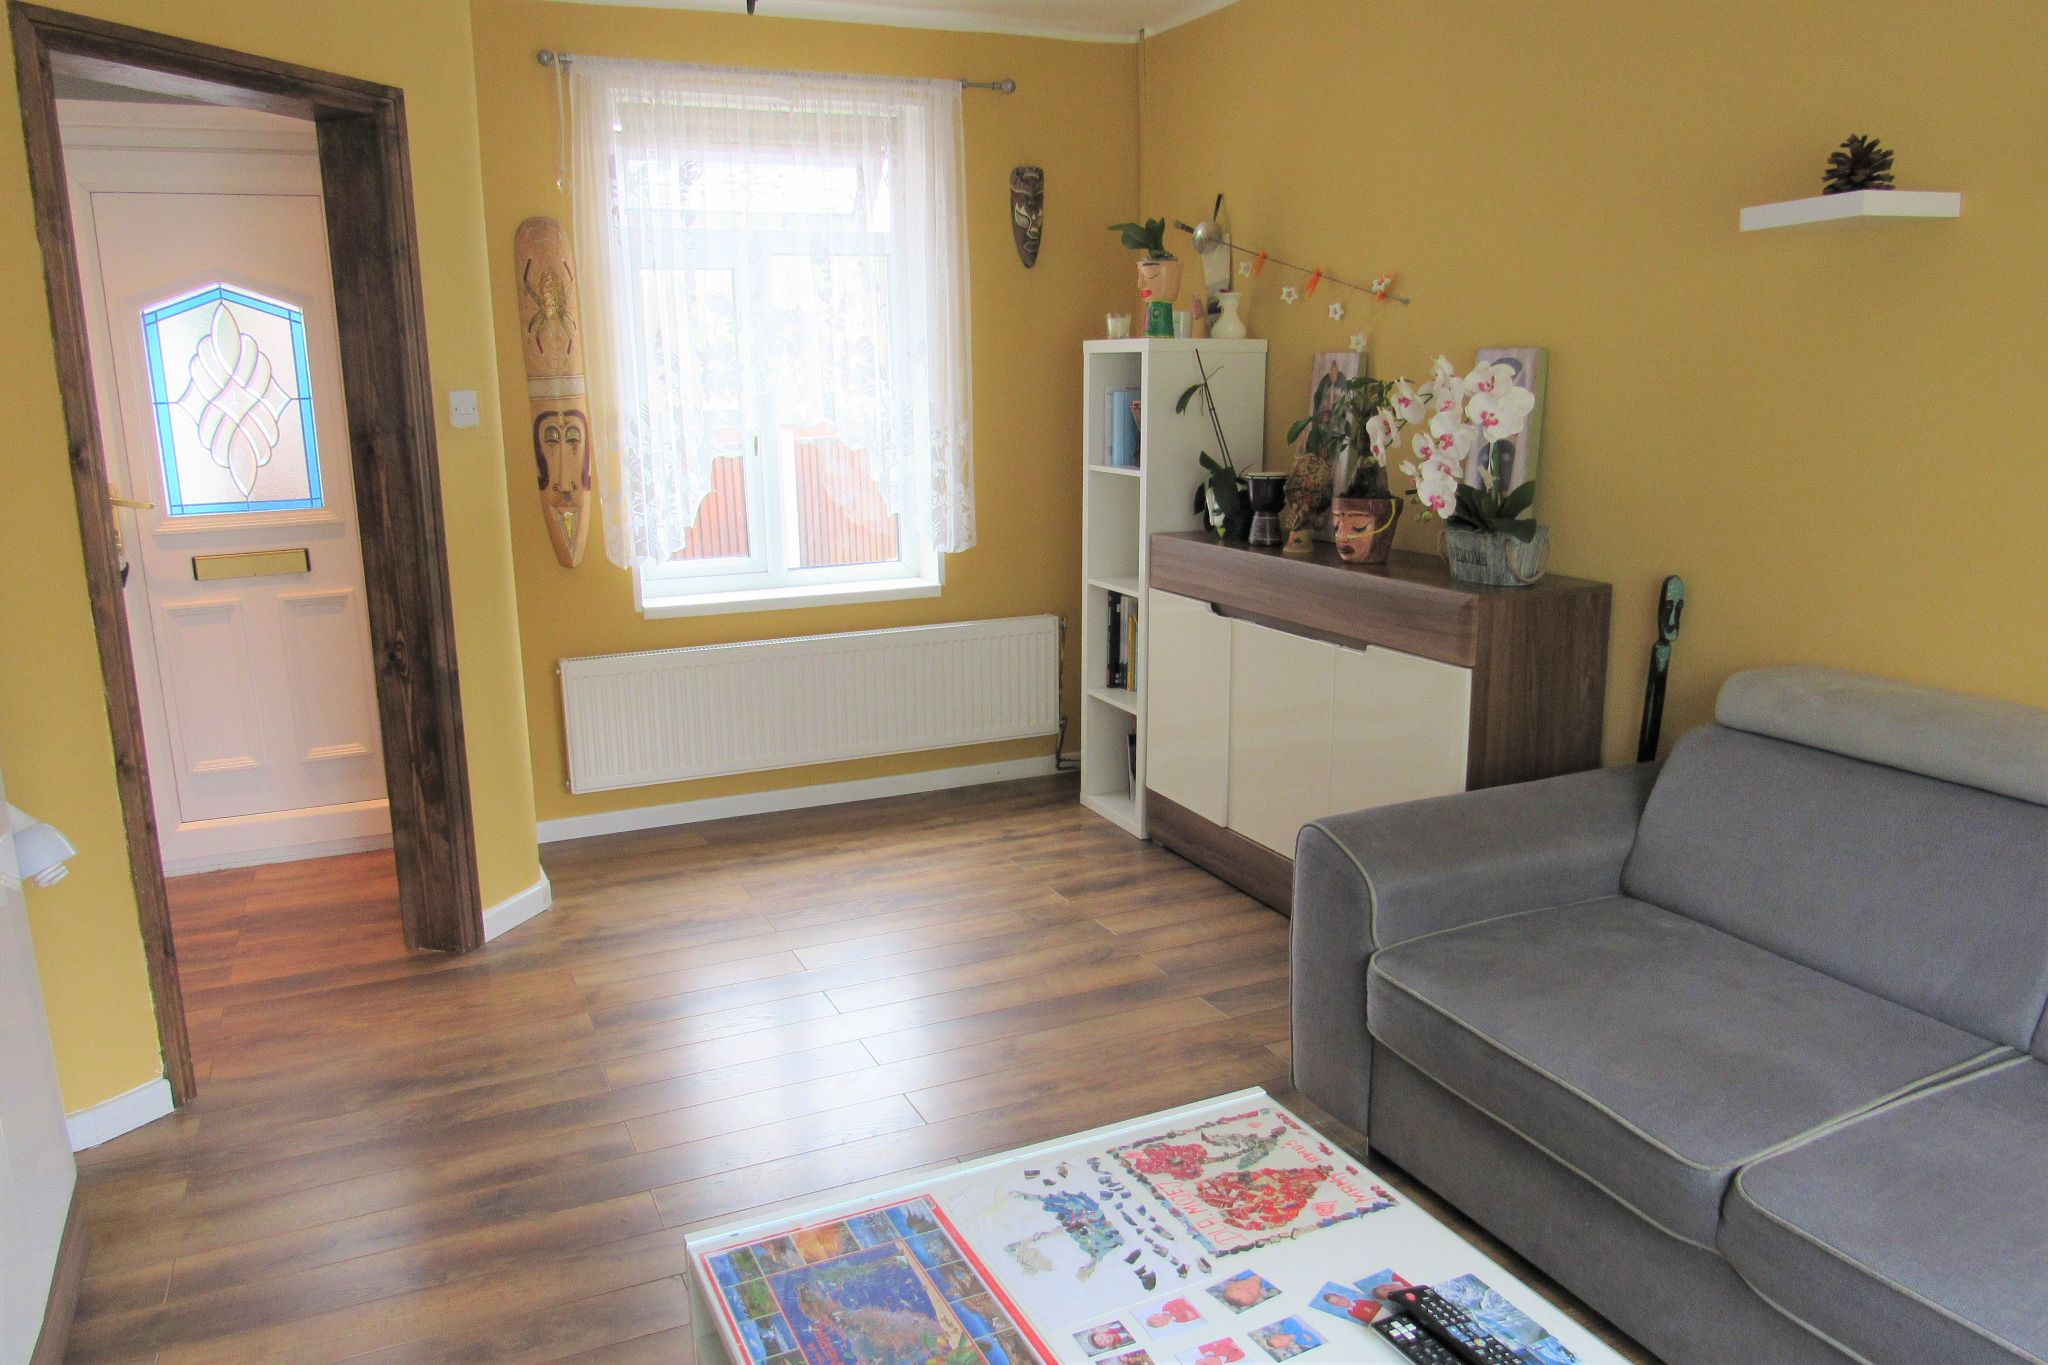 3 bedroom mid terraced house Sale Agreed in Manchester - Photograph 4.